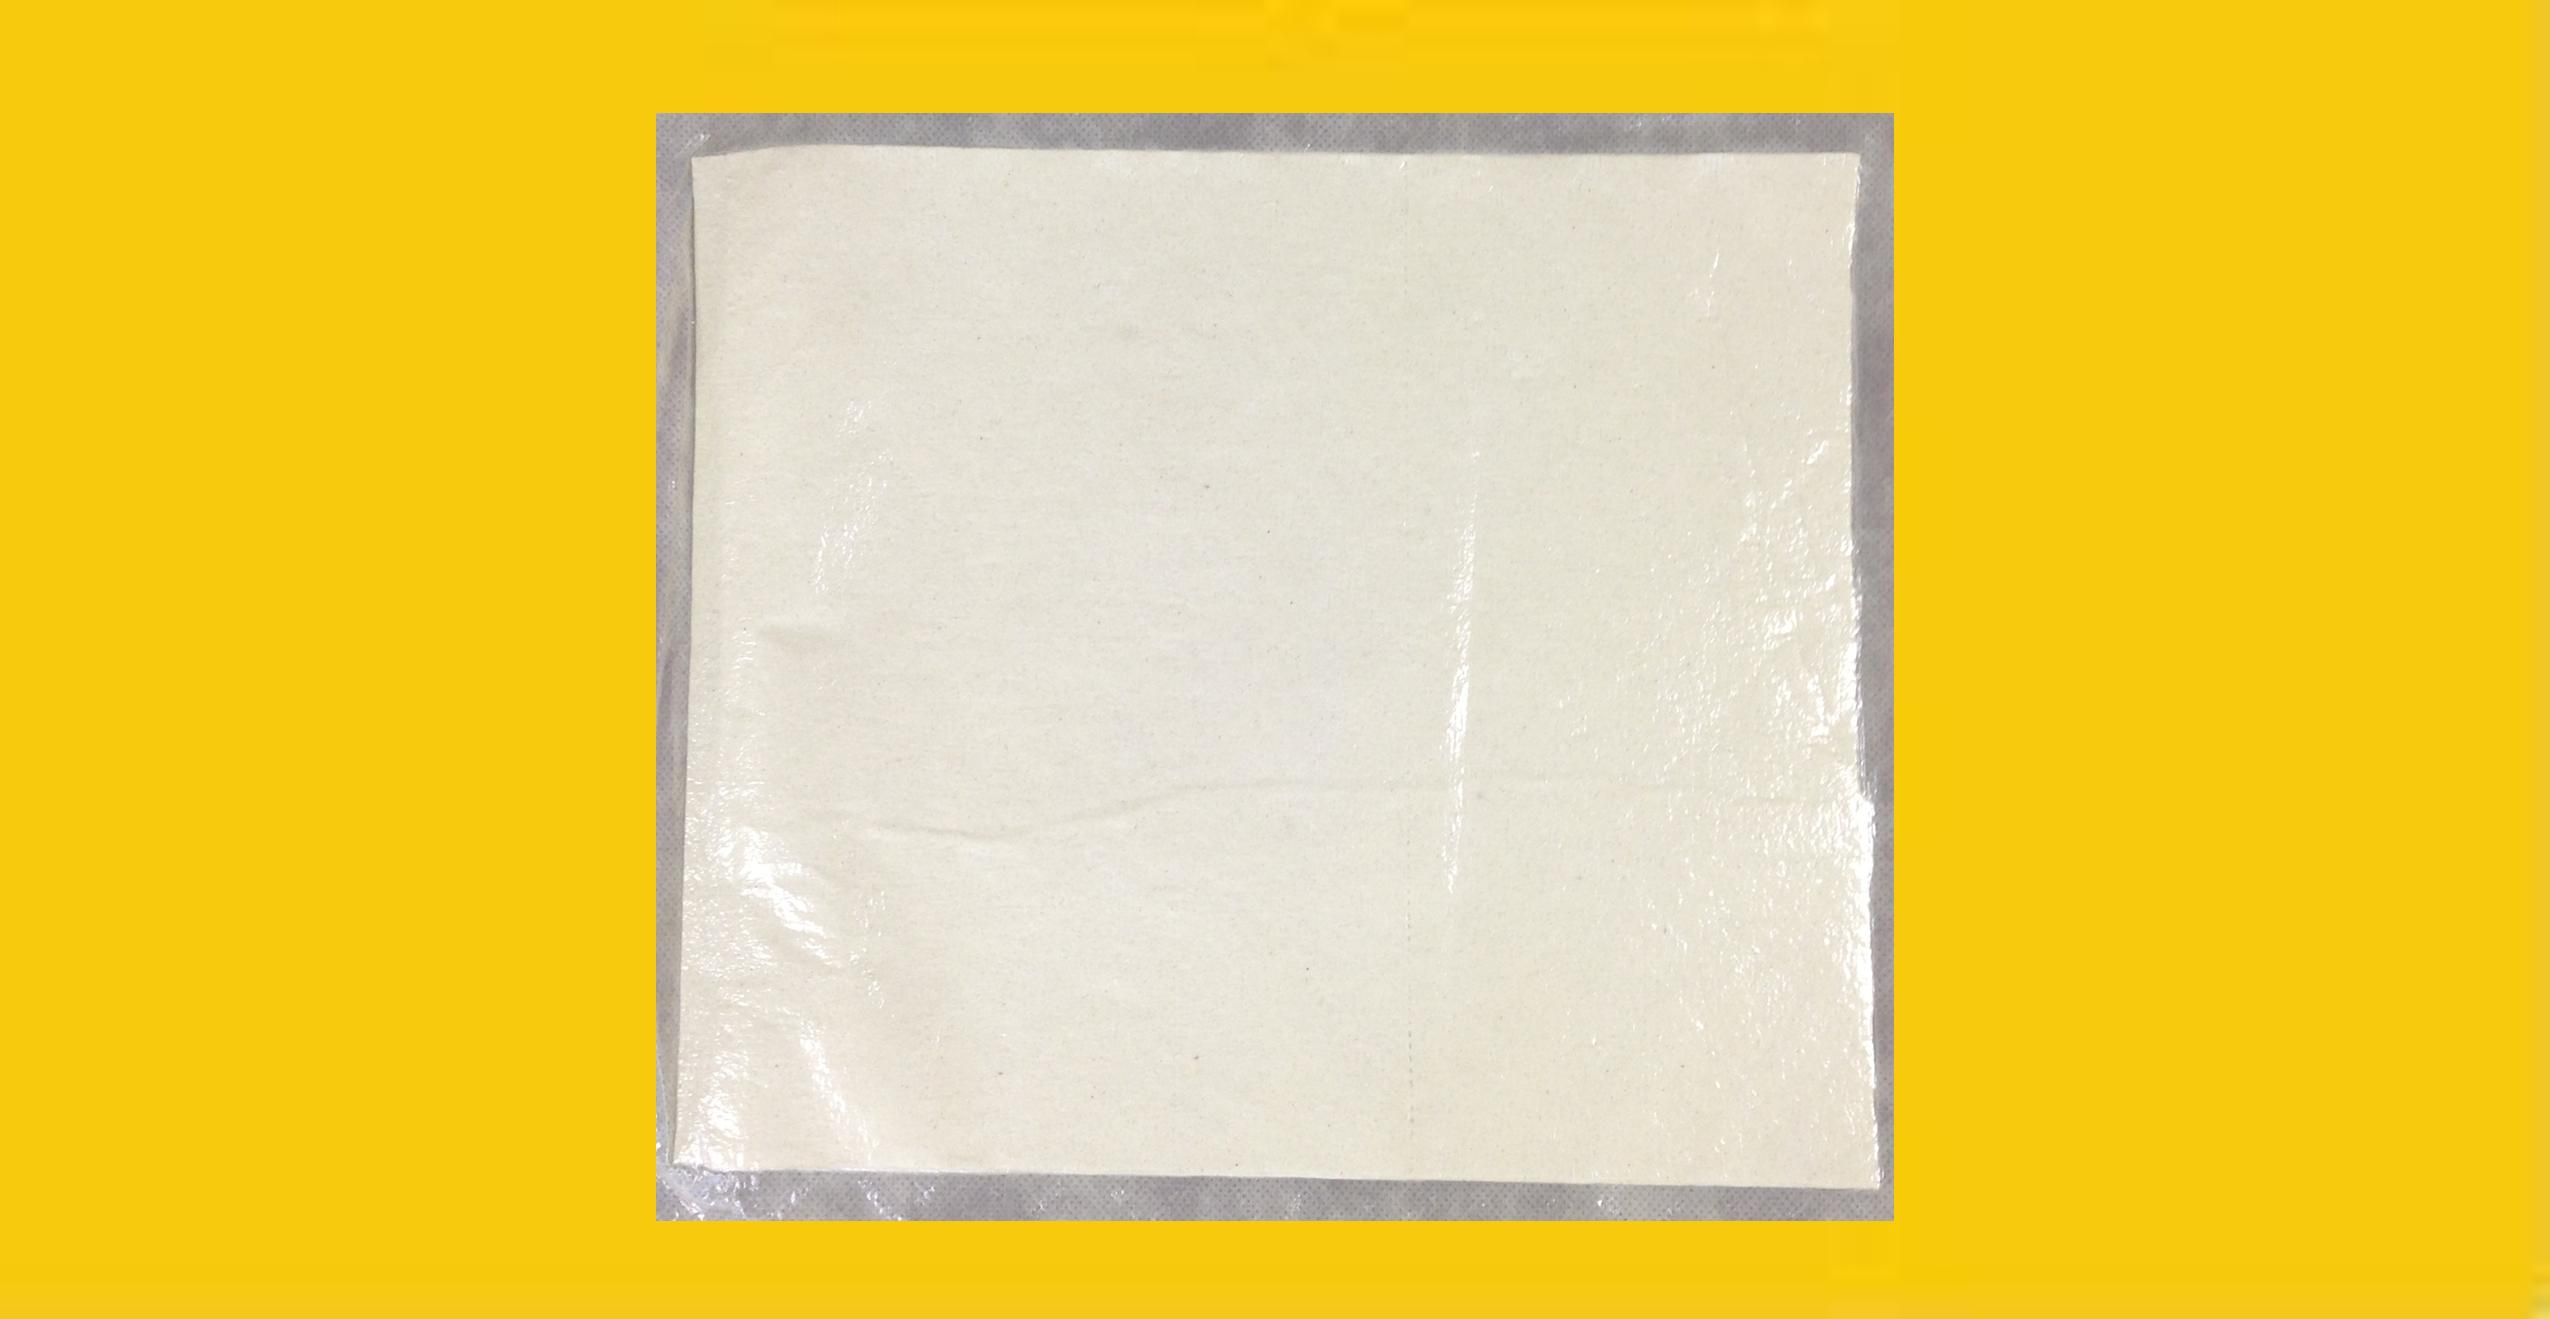 Large Clean Up Pads - Case of 400